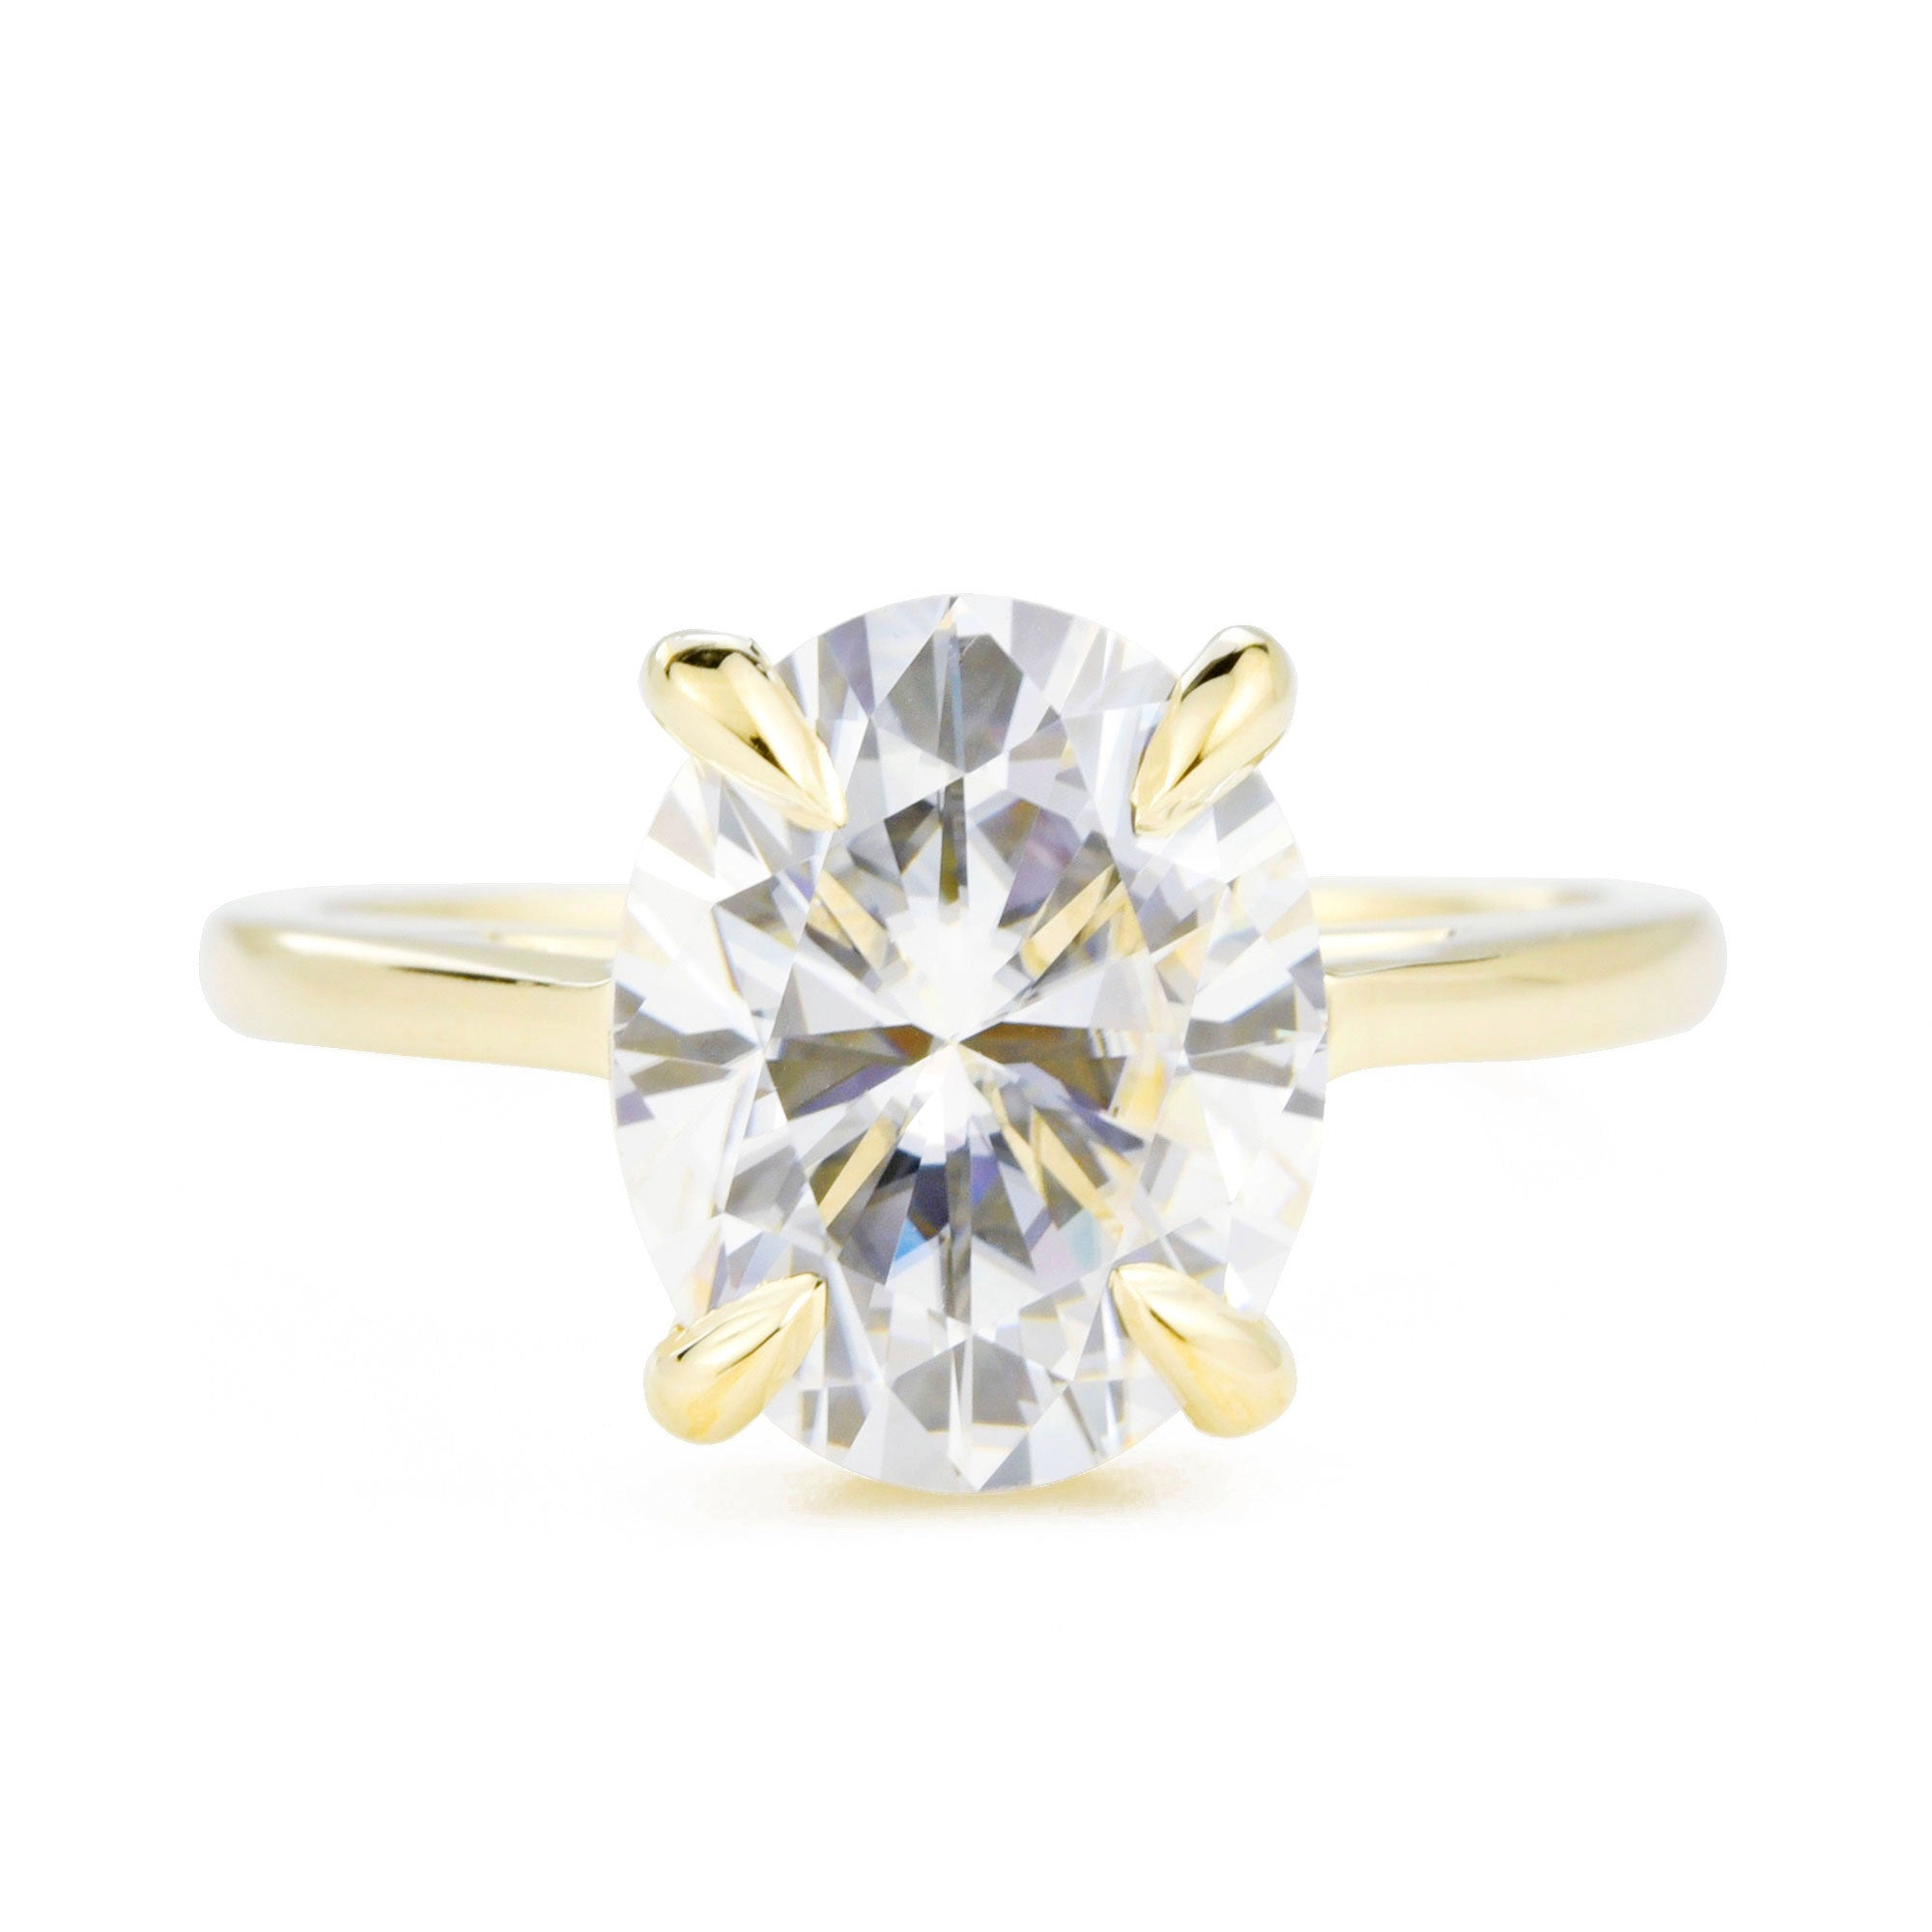 Ella Oval 3ct Moissanite Solitaire Engagement Ring